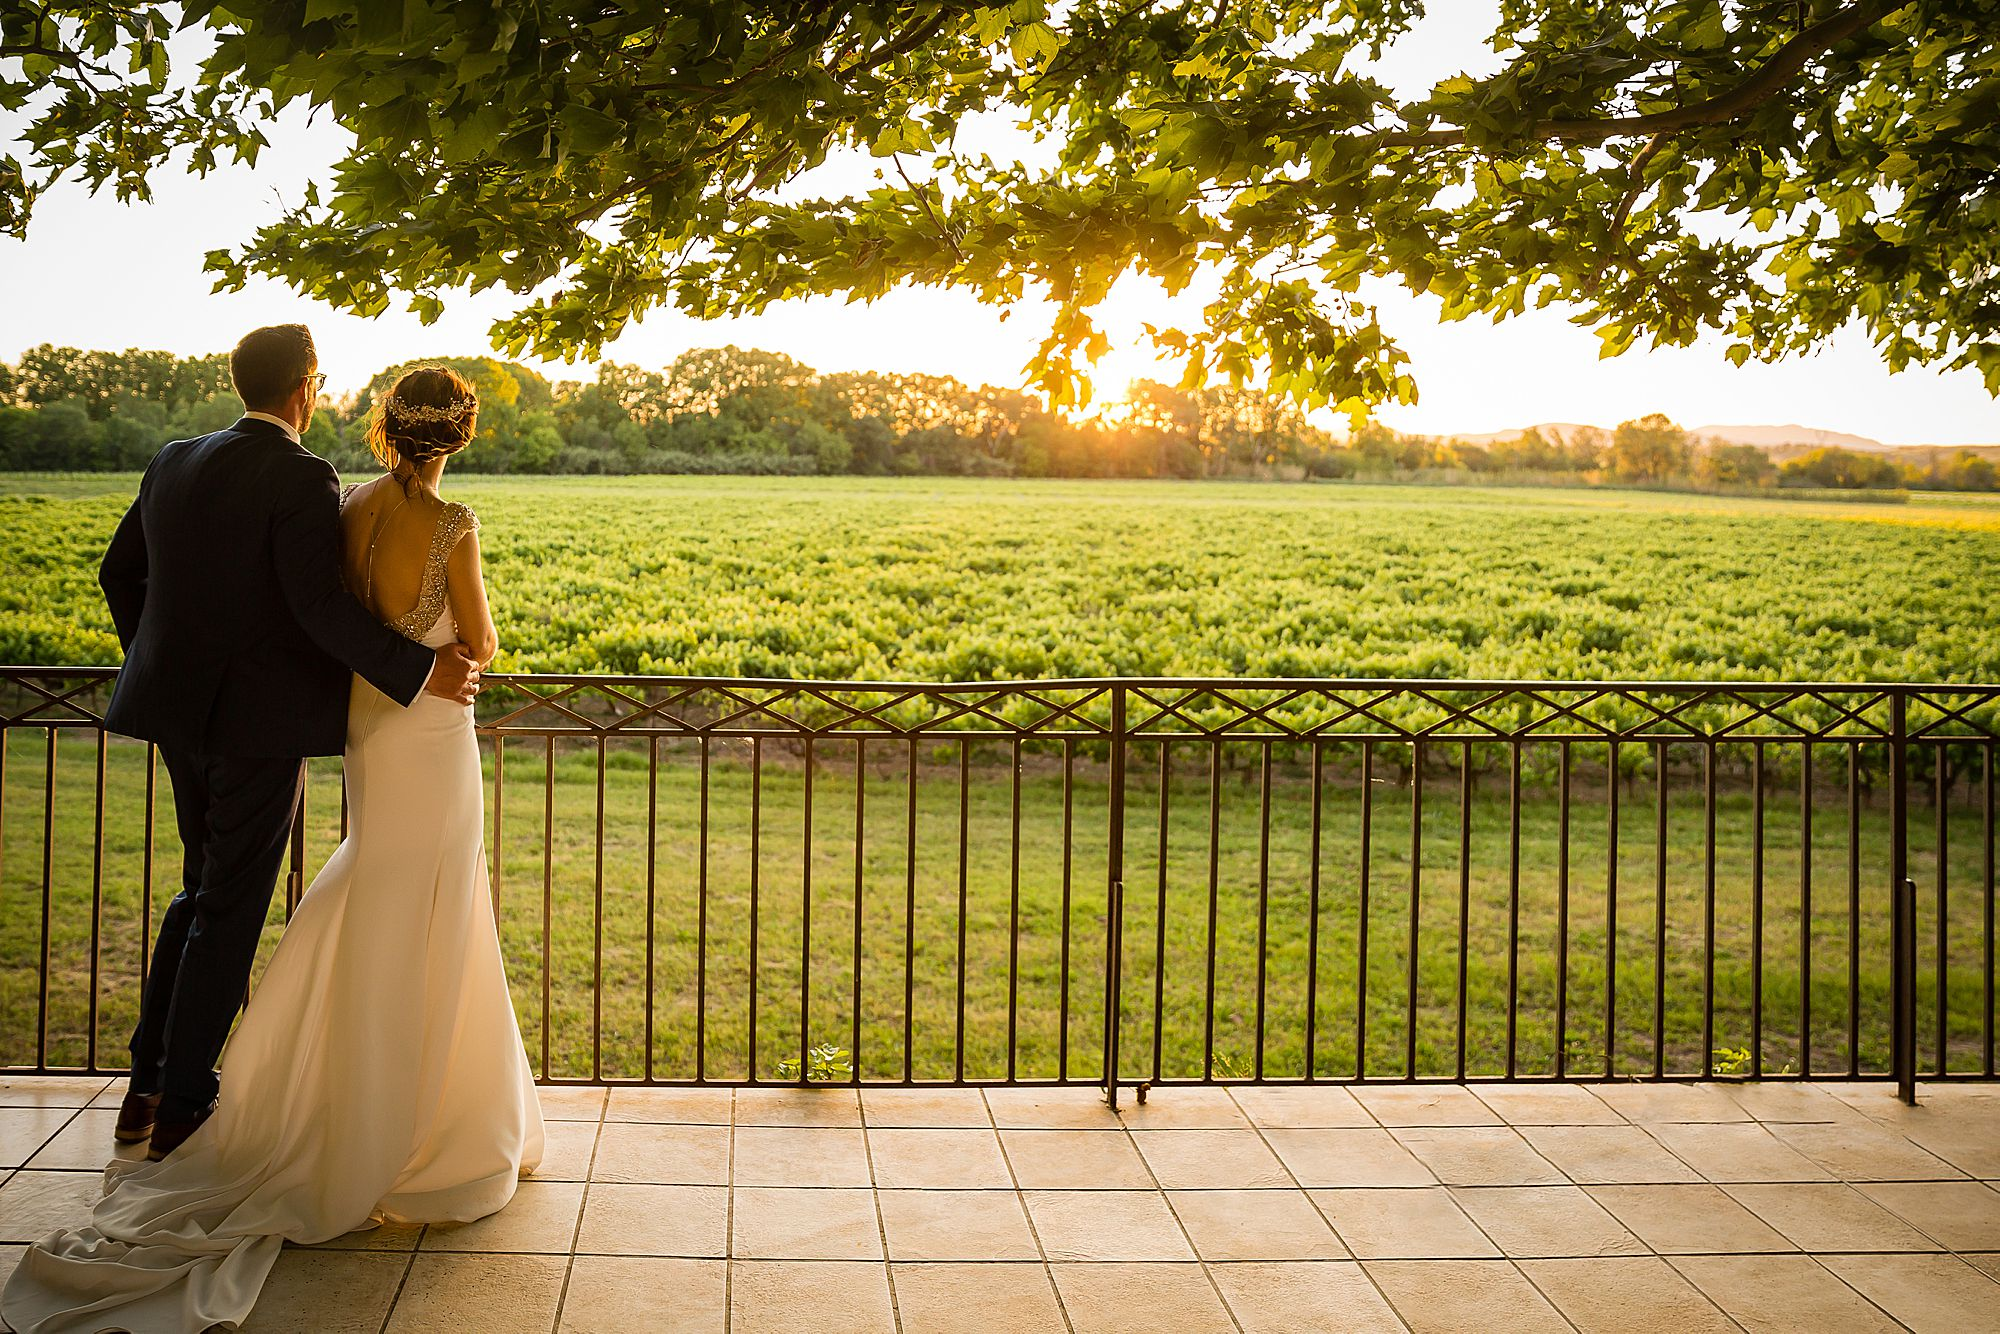 sunset at Chateau Rieutort wedding